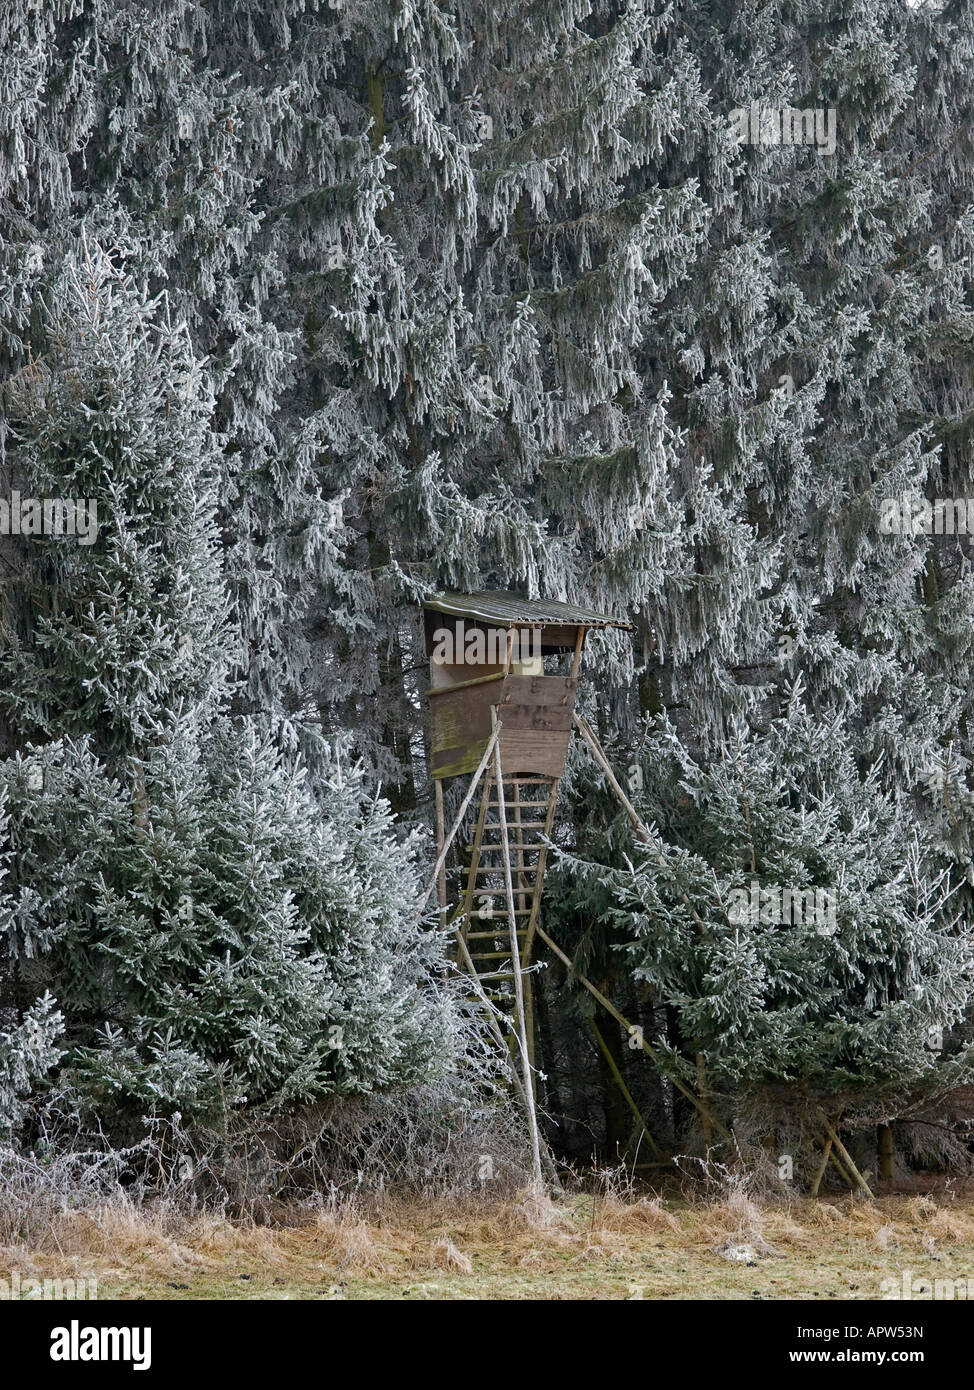 rised hide in forest in the middle of frozen spruces at the edge of a field in winter time - Stock Image